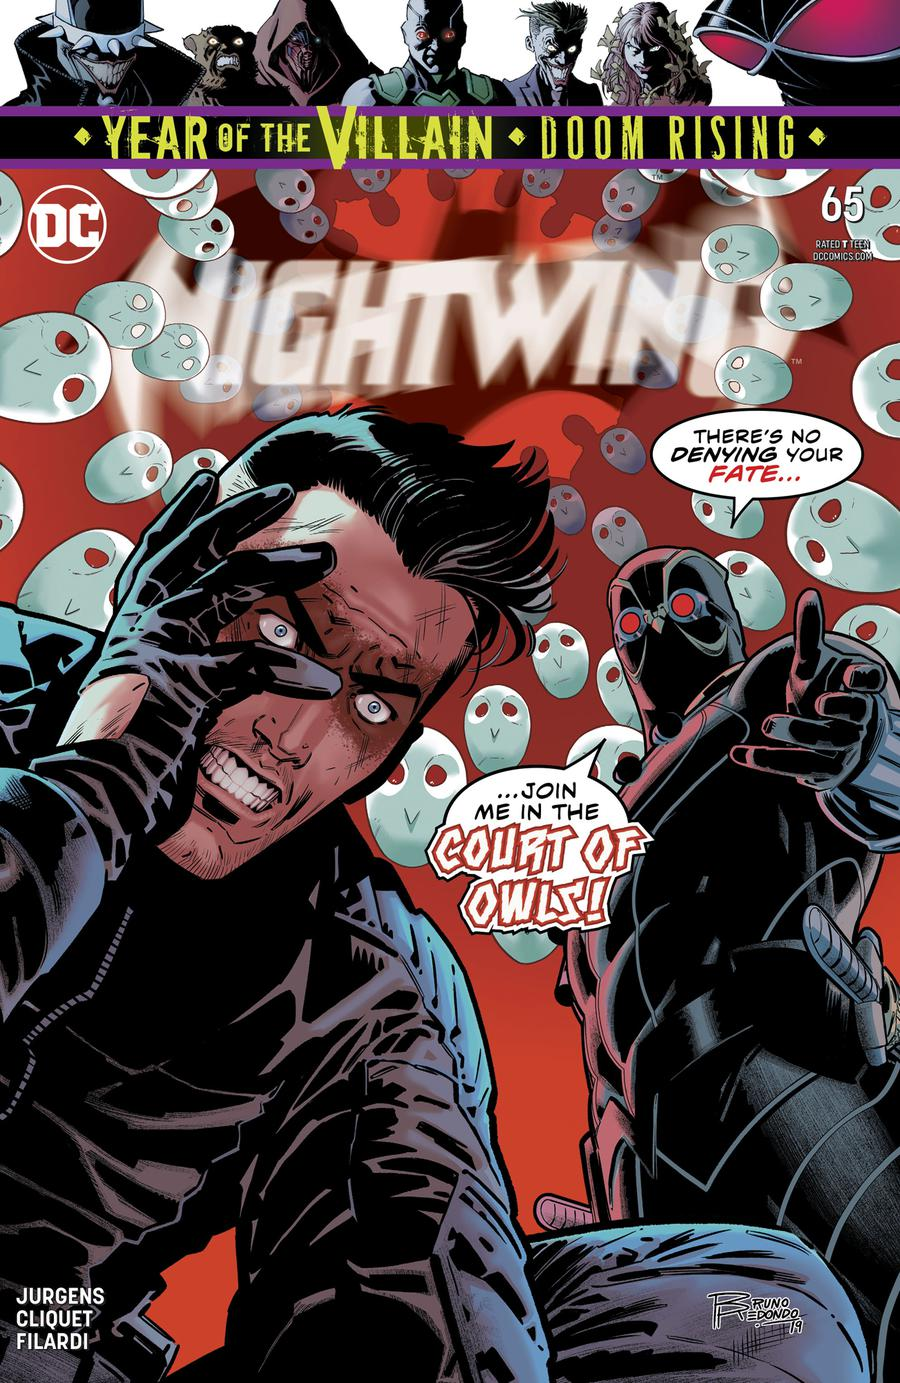 Nightwing Vol 4 #65 Cover A Regular Bruno Redondo Cover (Year Of The Villain Doom Rising Tie-In)